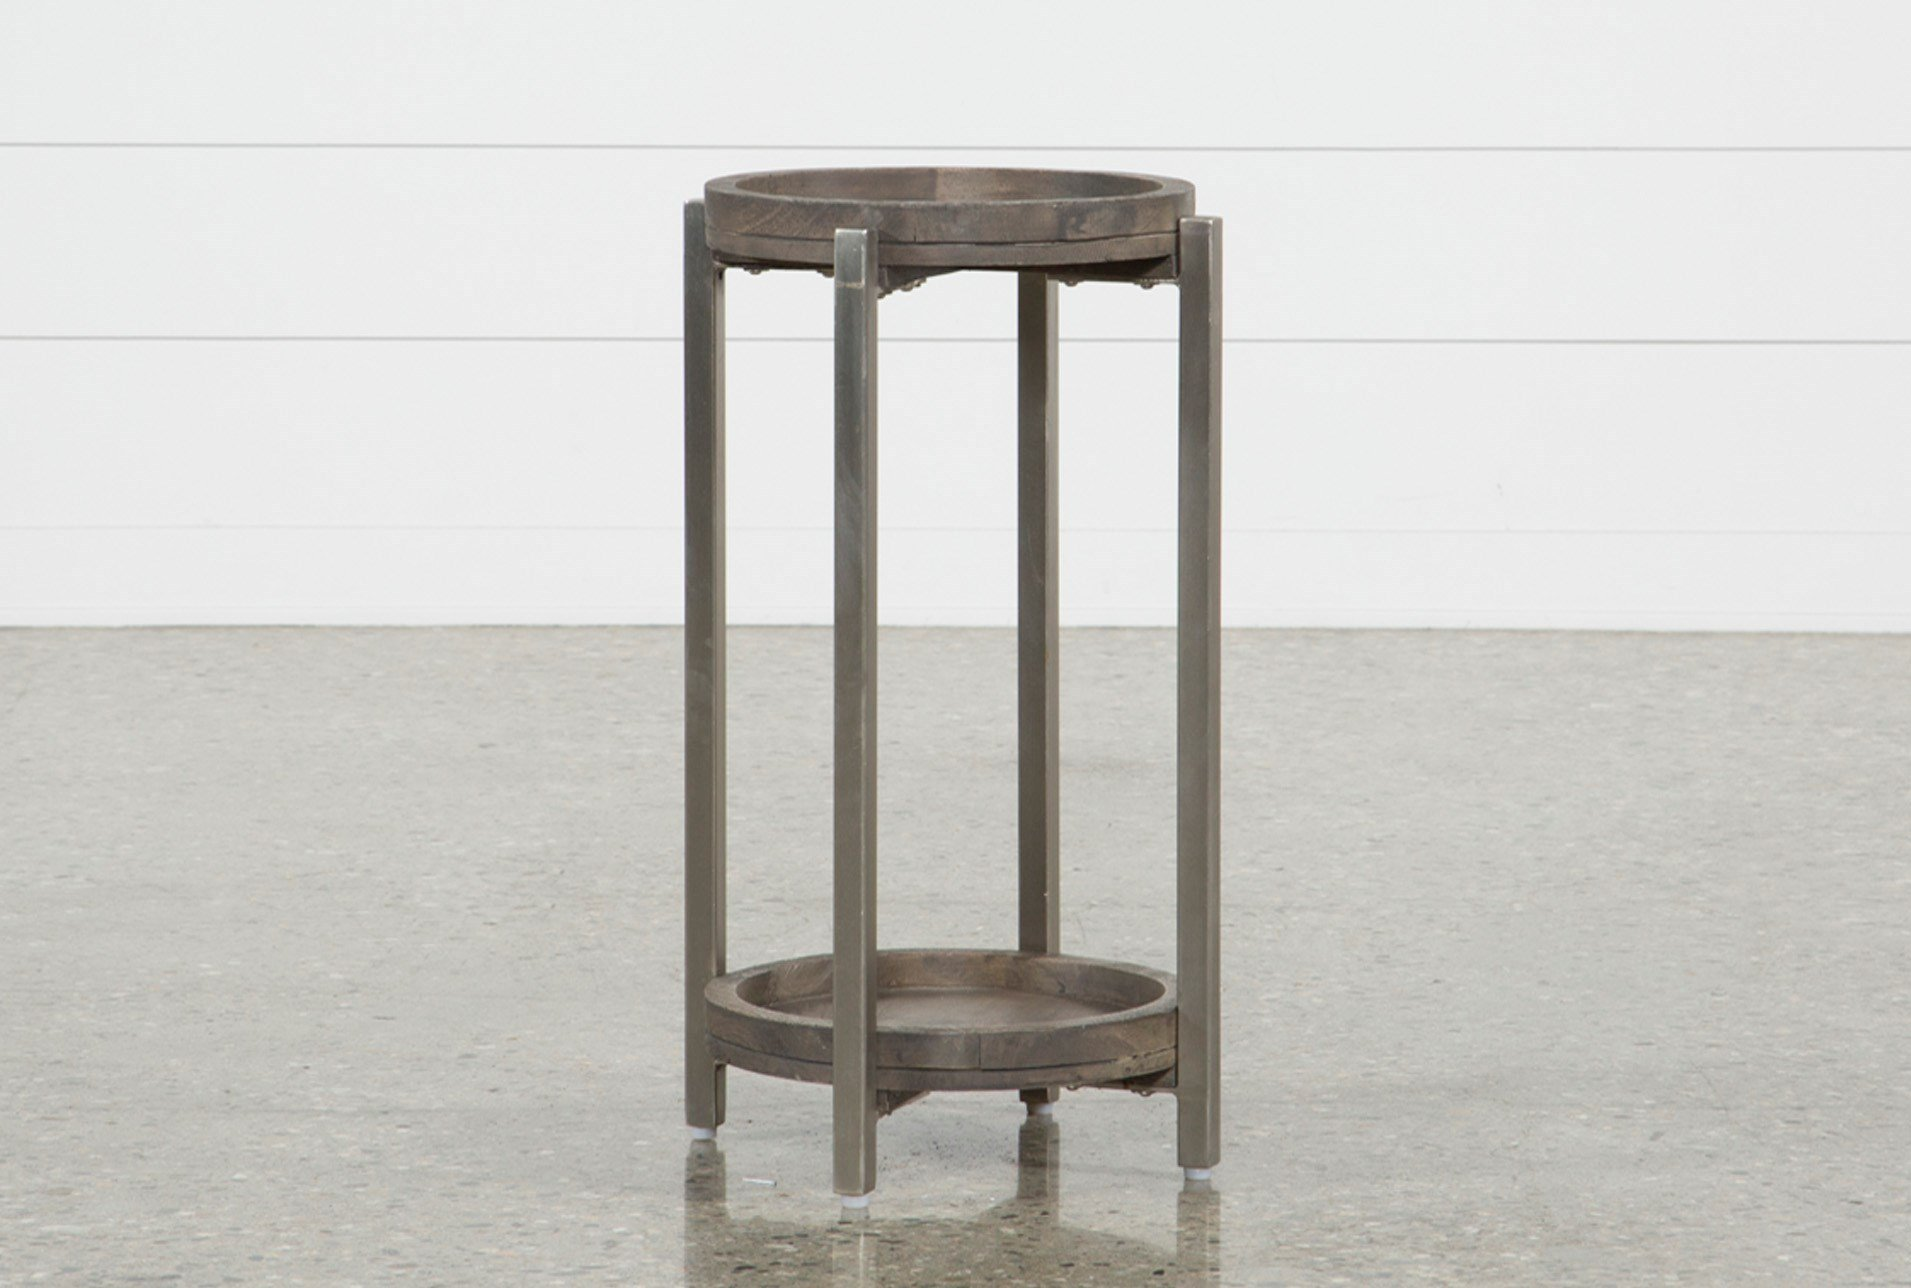 swell round accent table living spaces gray qty has been successfully your cart target wicker chairs small console chest bedroom mirrors pier one imports patio furniture red and